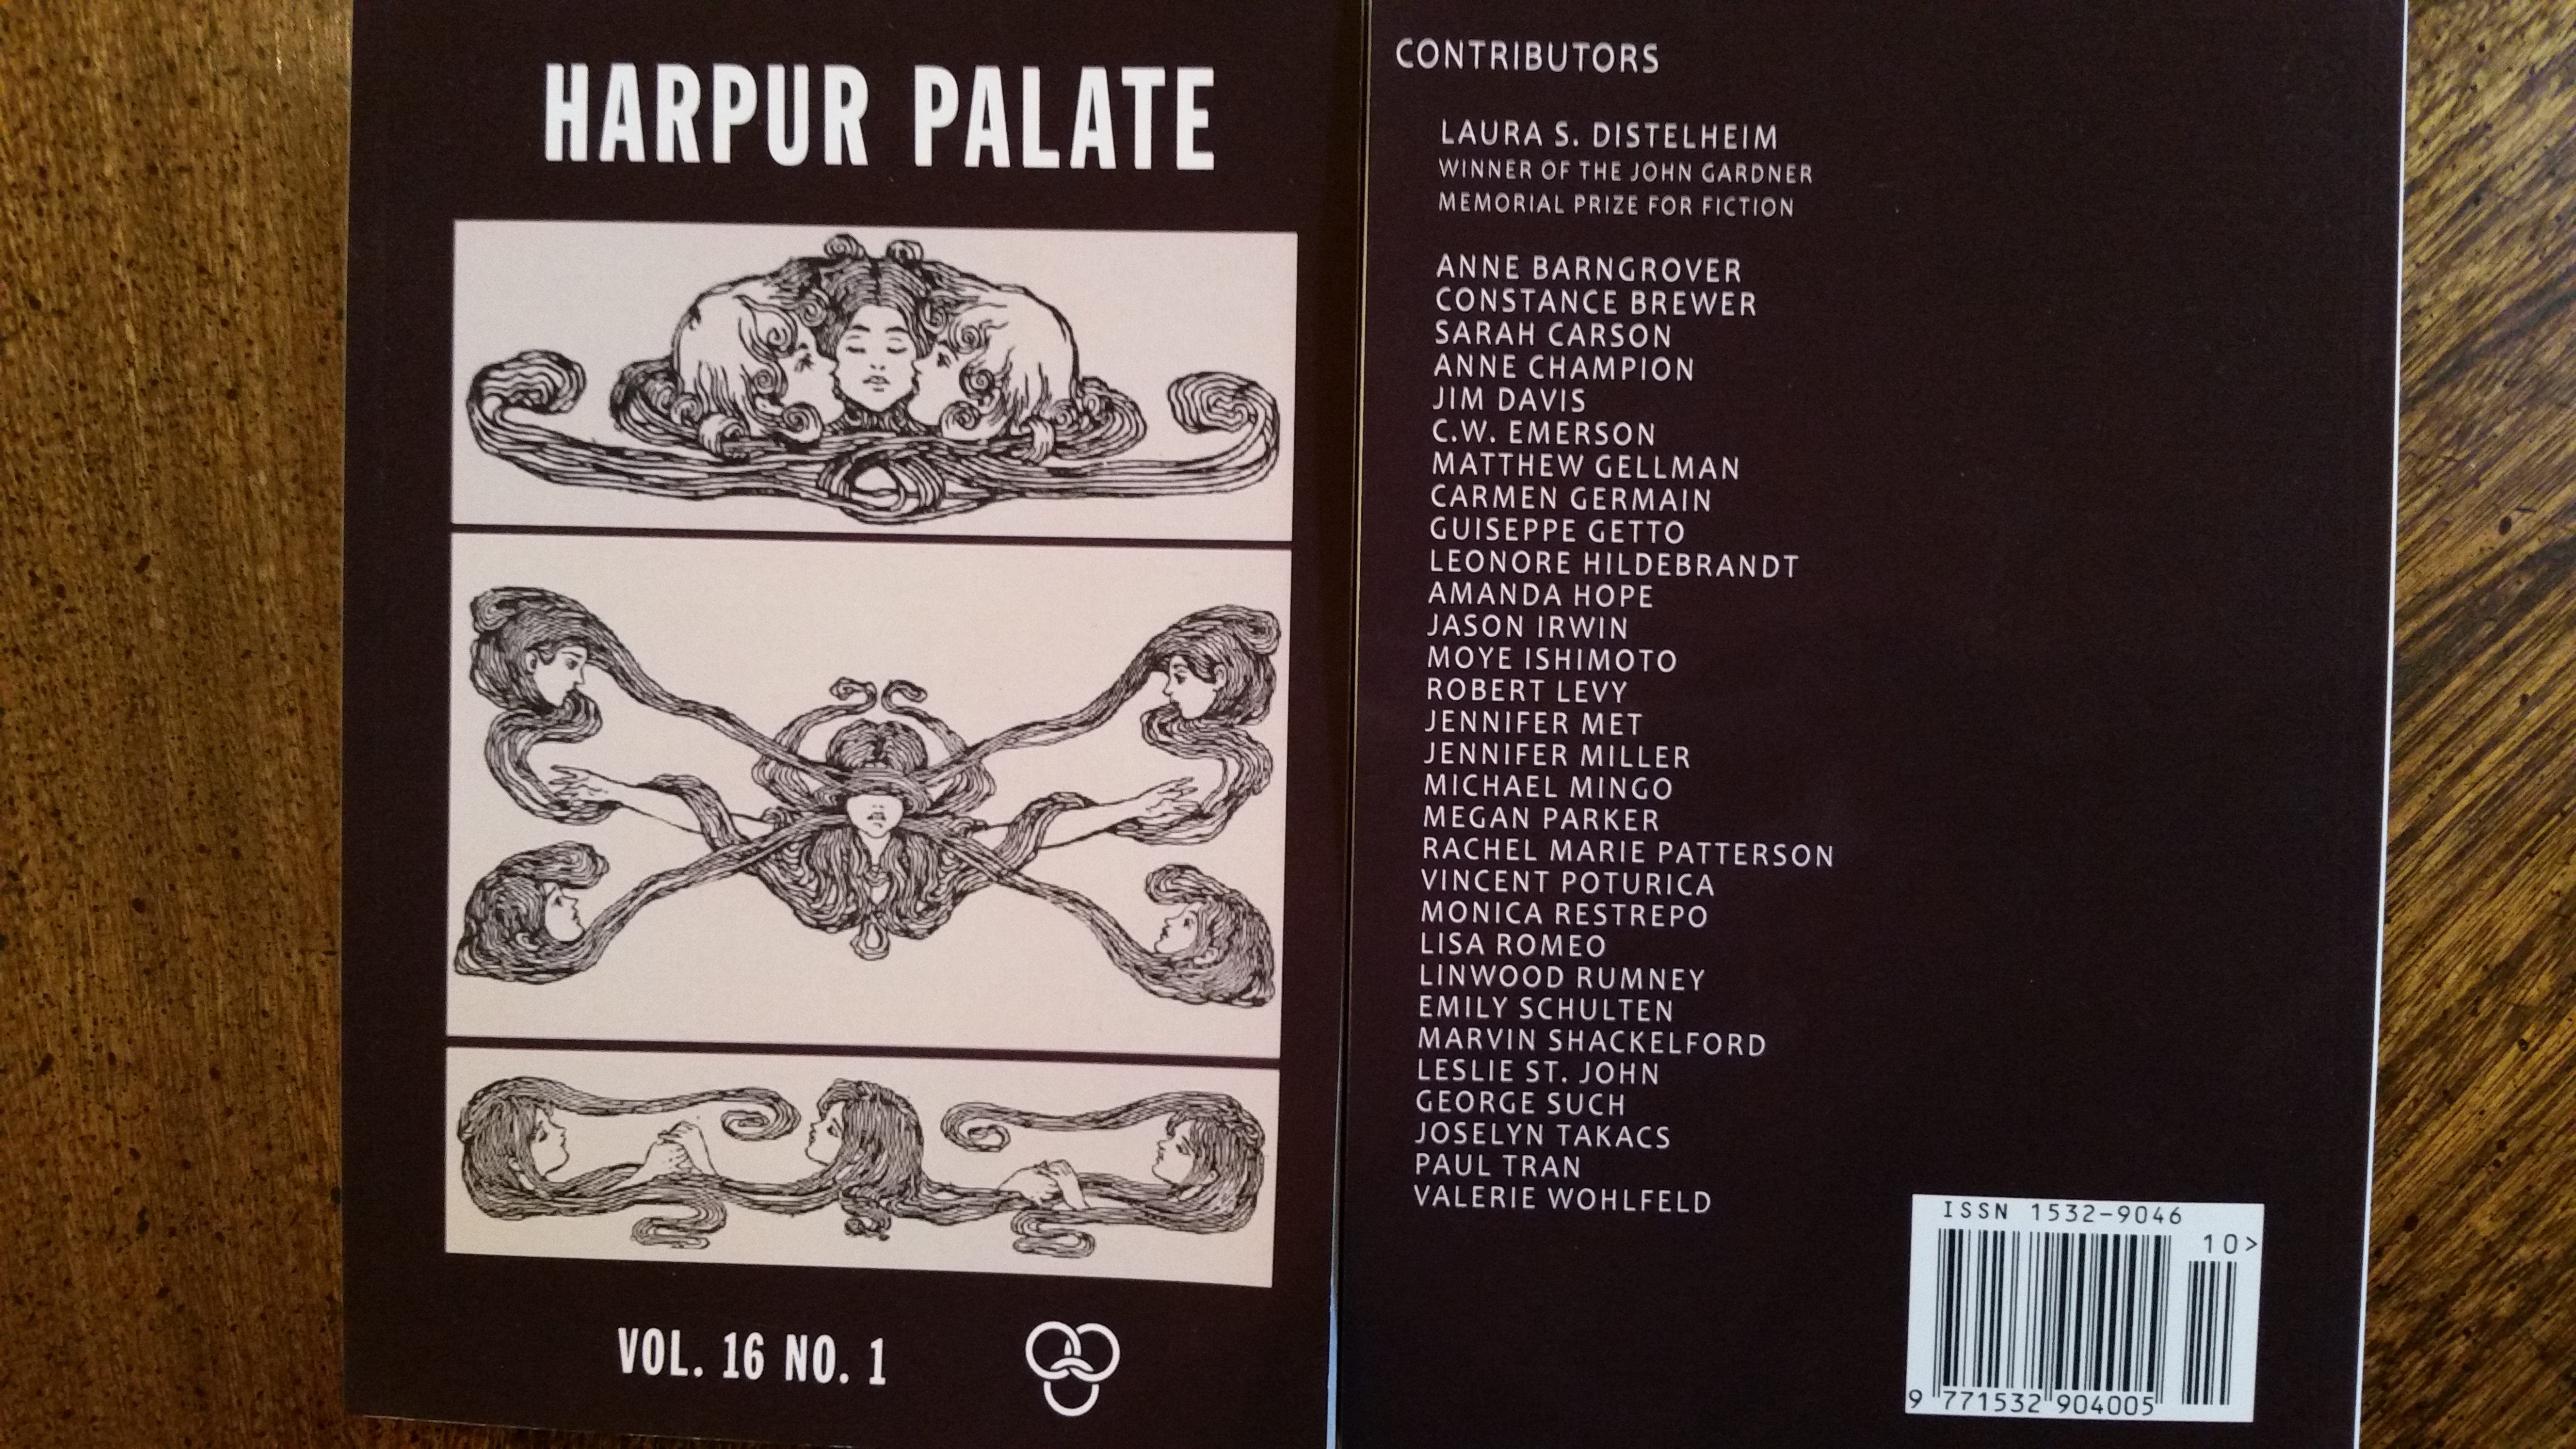 A Poem About the Founding of America in Harpur Palate